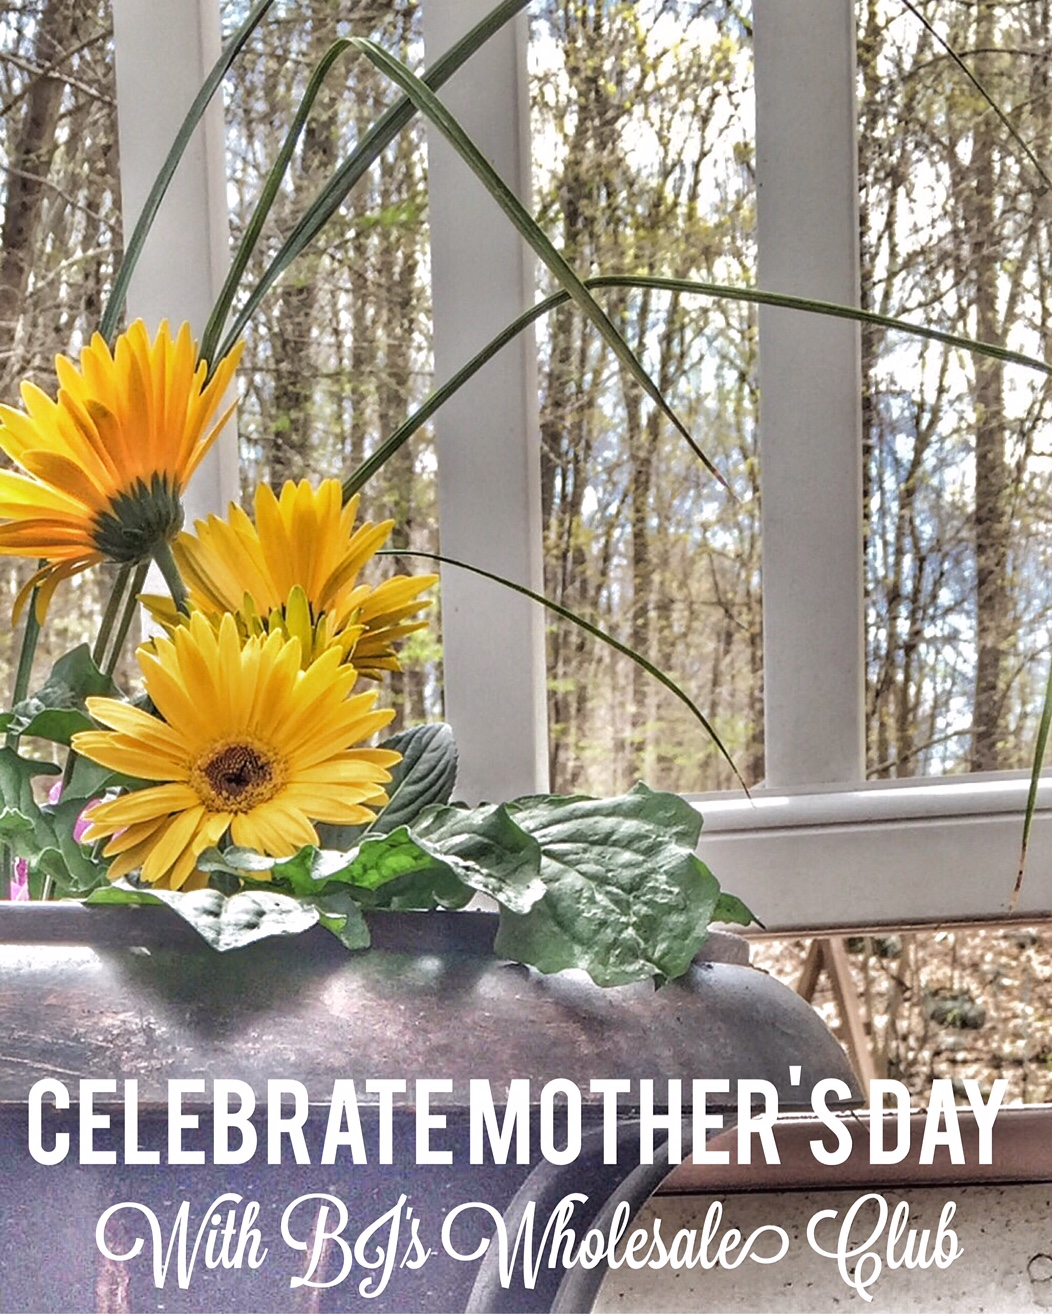 Celebrate Mother's Day with BJ's Wholesale Club